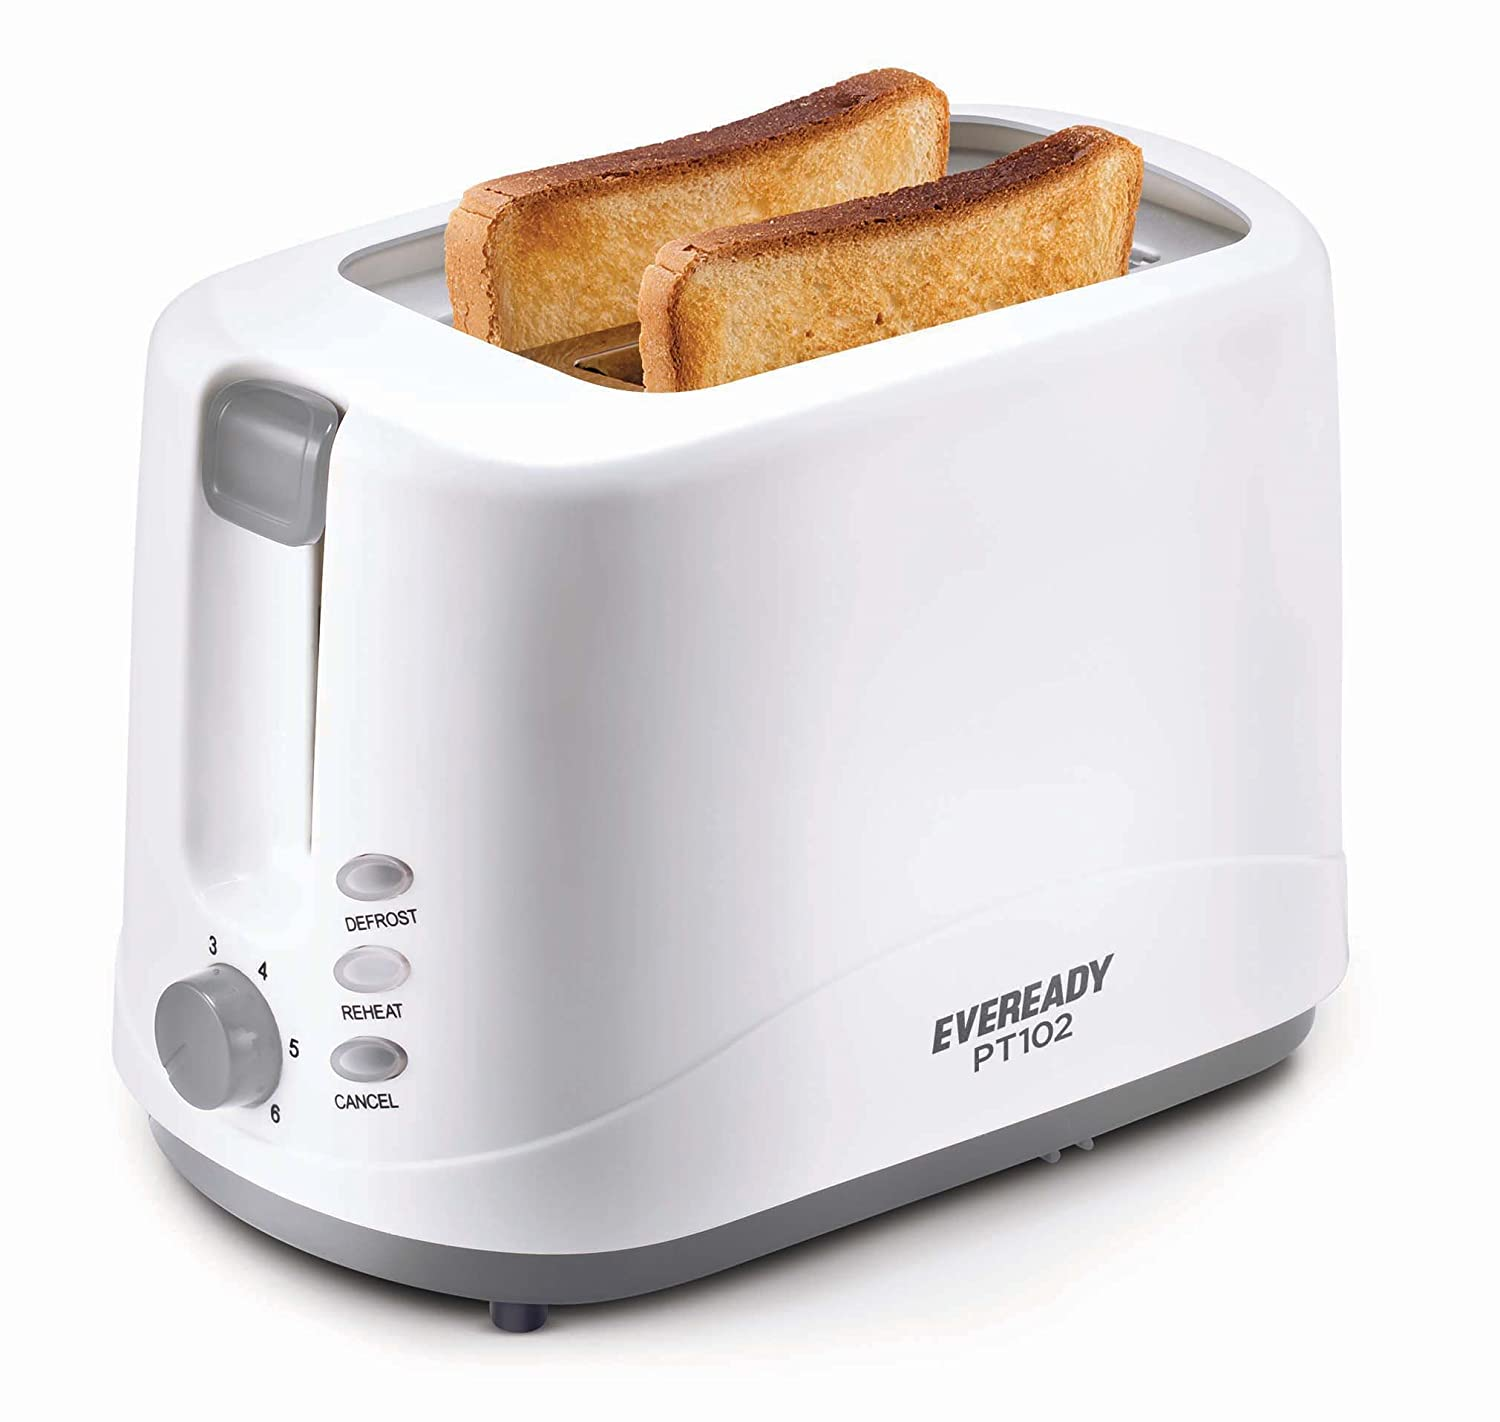 Eveready 750 Watt 2 Slice Pop Up Toster with Defrost, Reheat